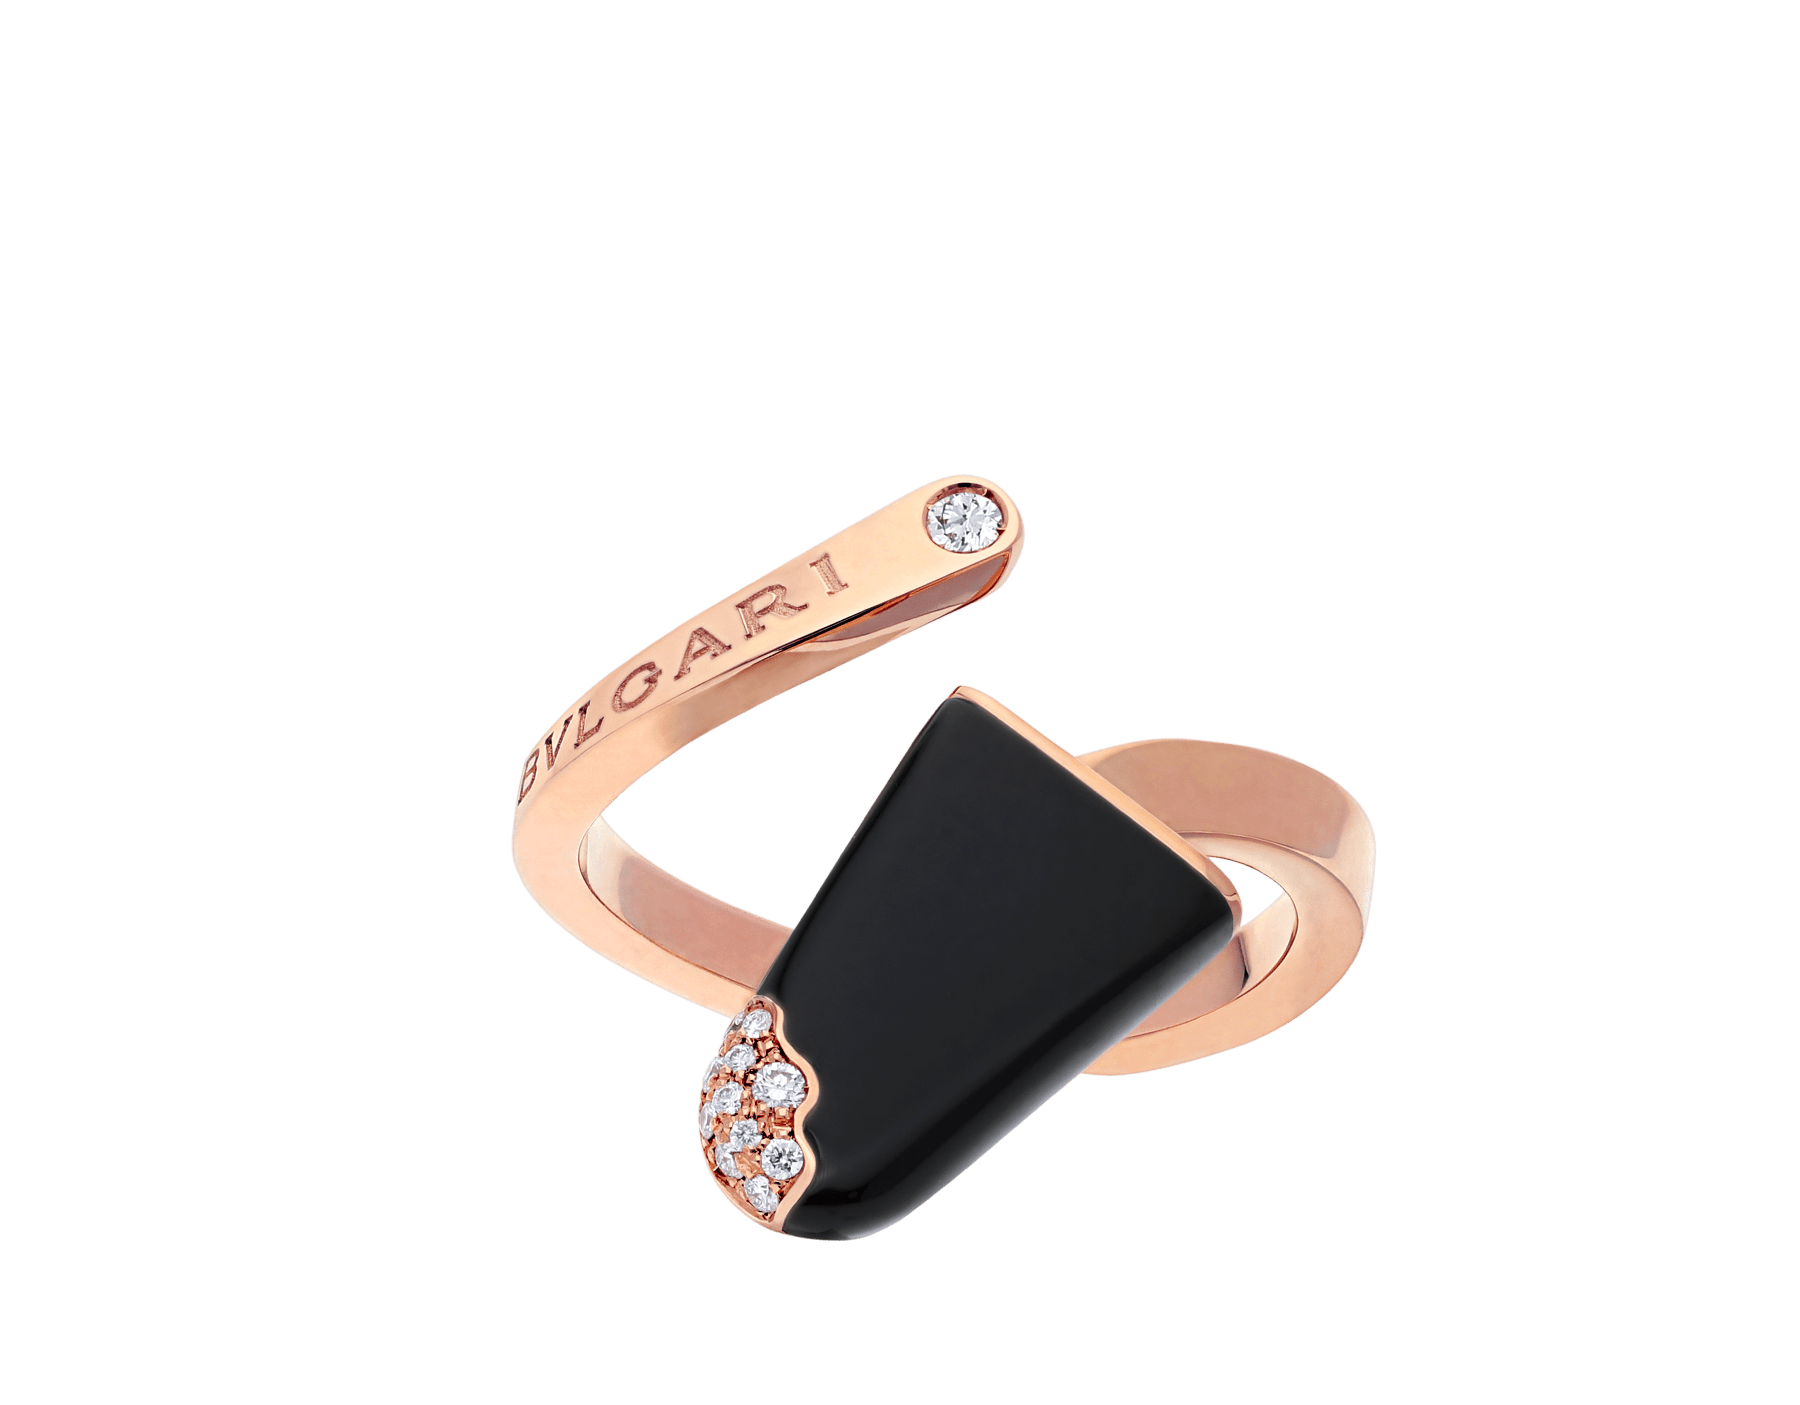 BVLGARI BVLGARI Gelati 18 kt rose gold ring set with onyx and pavé diamonds AN858499 image 1